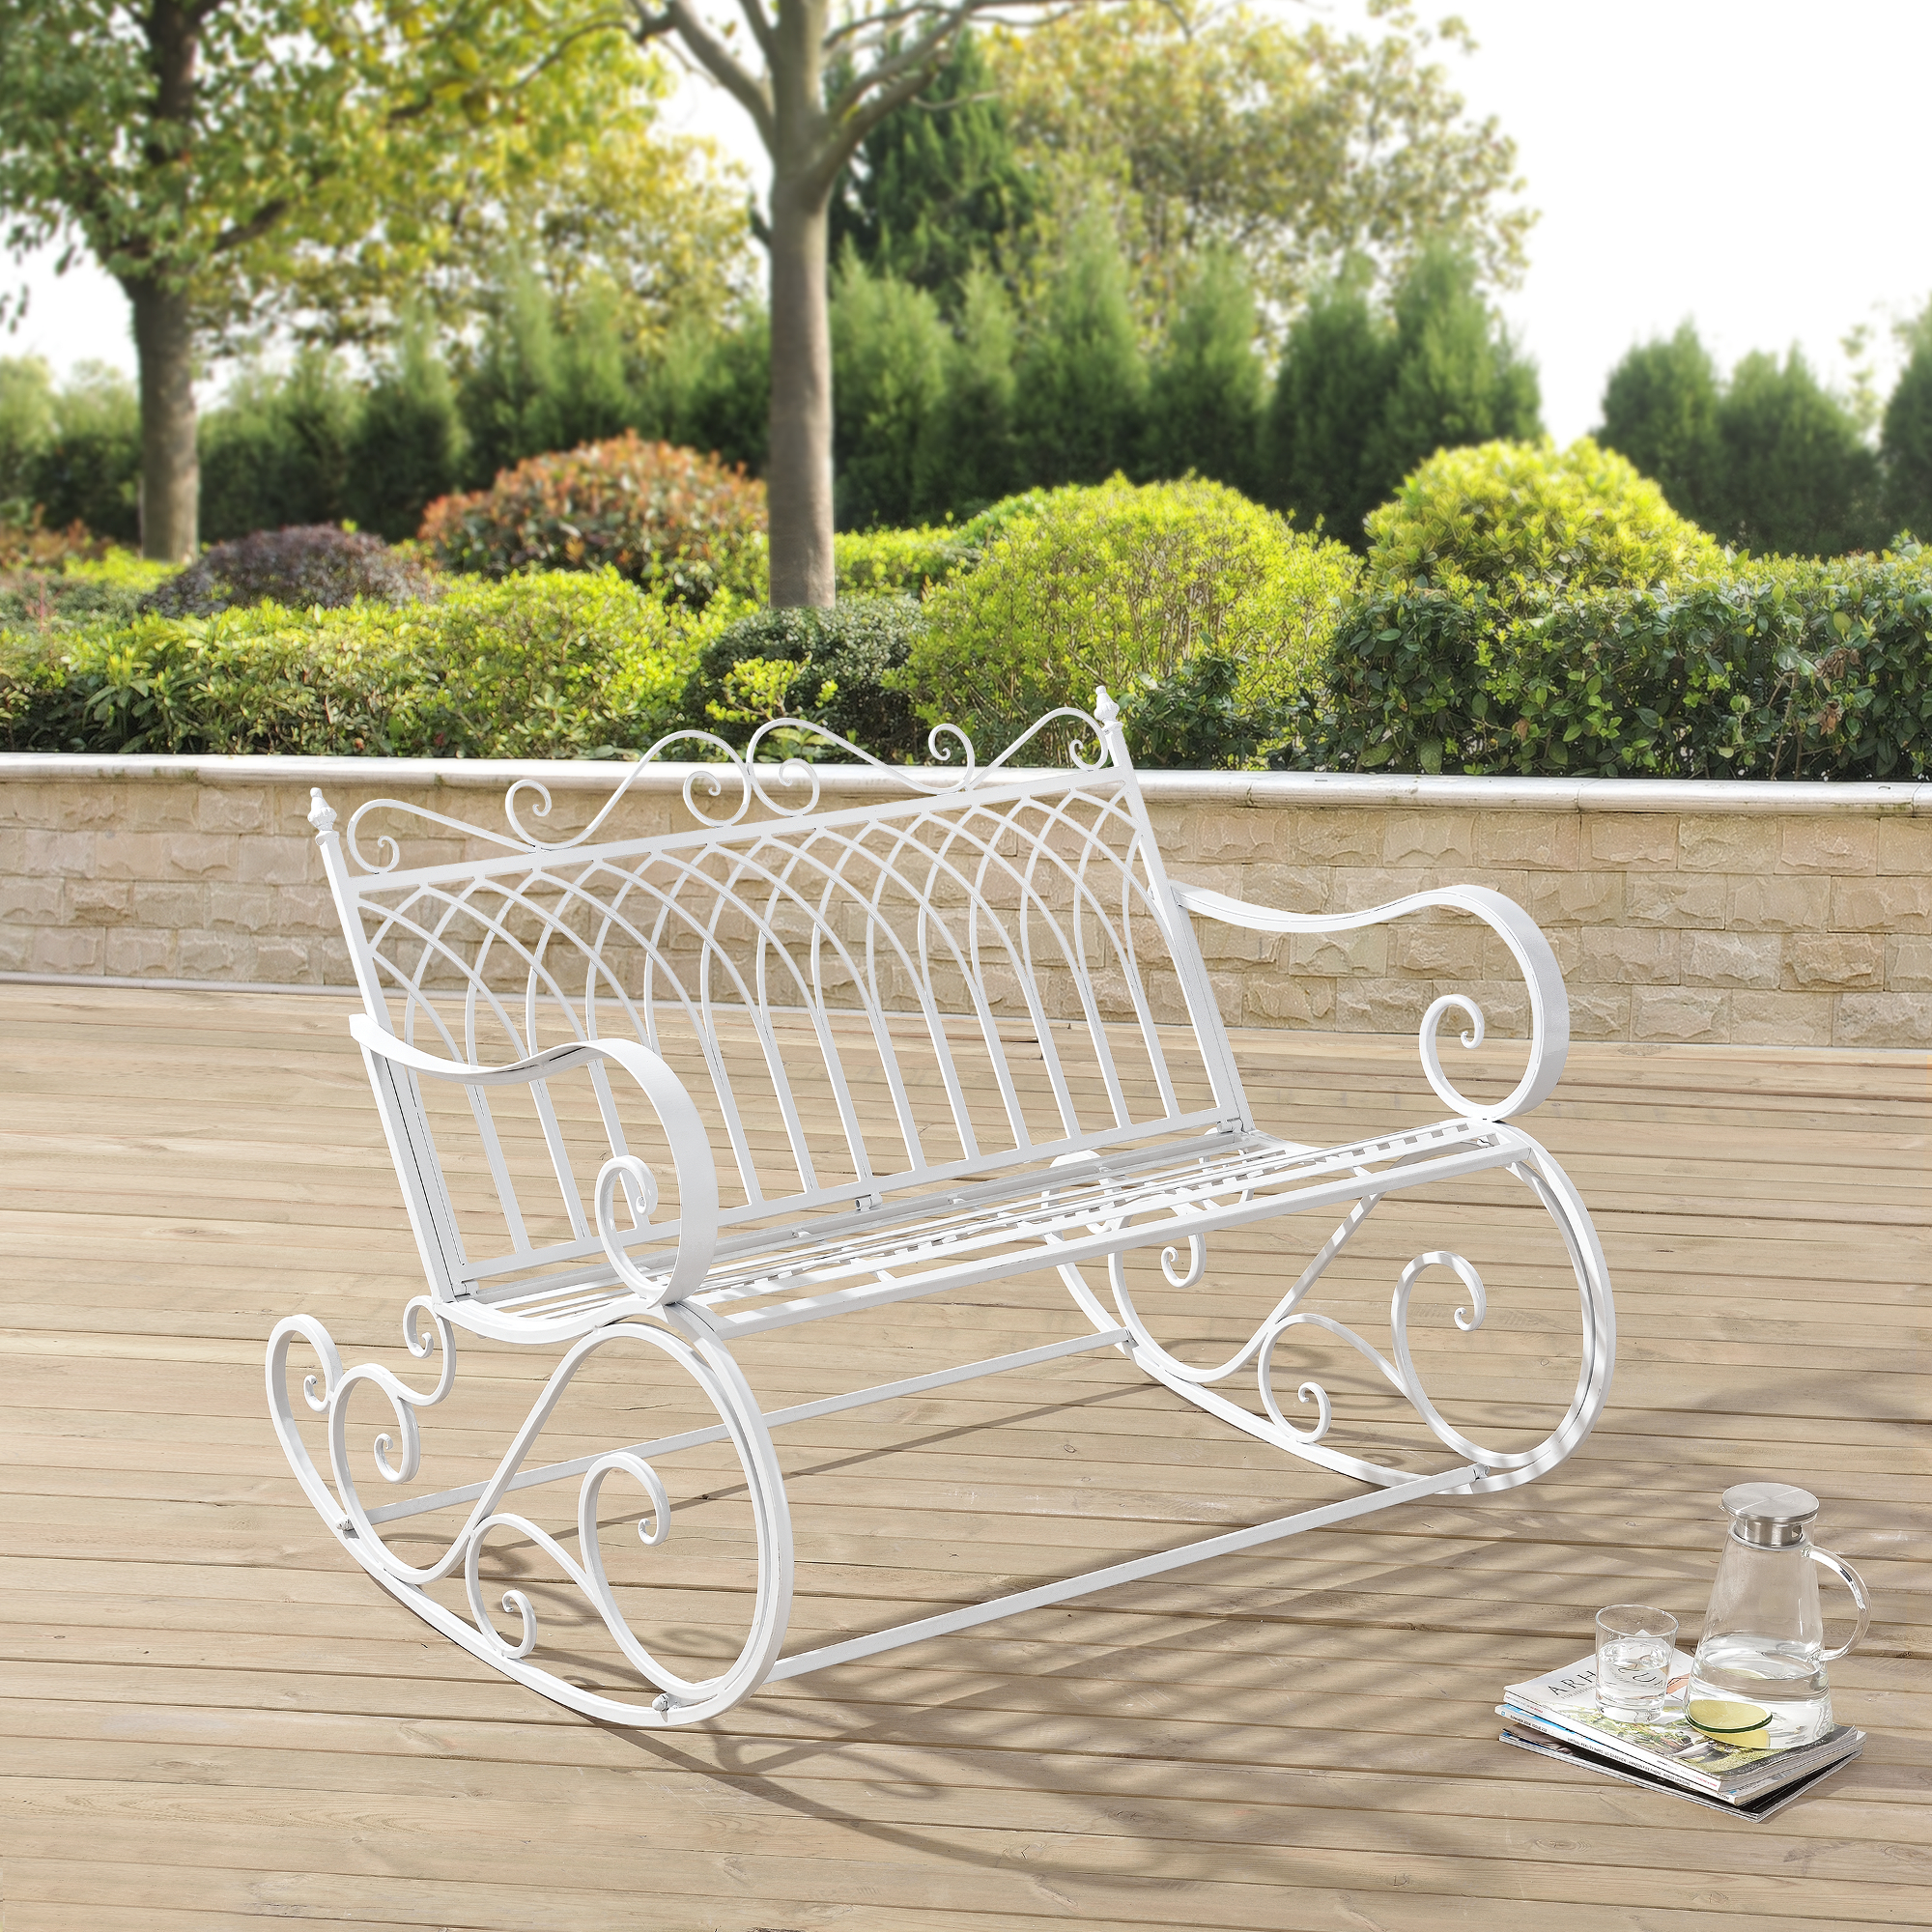 banc bascule banc jardin meuble jardin m tal balan oire blanc fer ebay. Black Bedroom Furniture Sets. Home Design Ideas